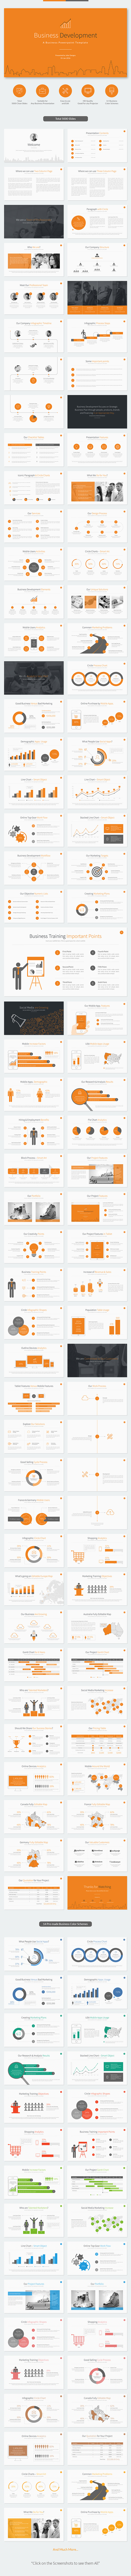 GraphicRiver Business Development Powerpoint Template 10420710